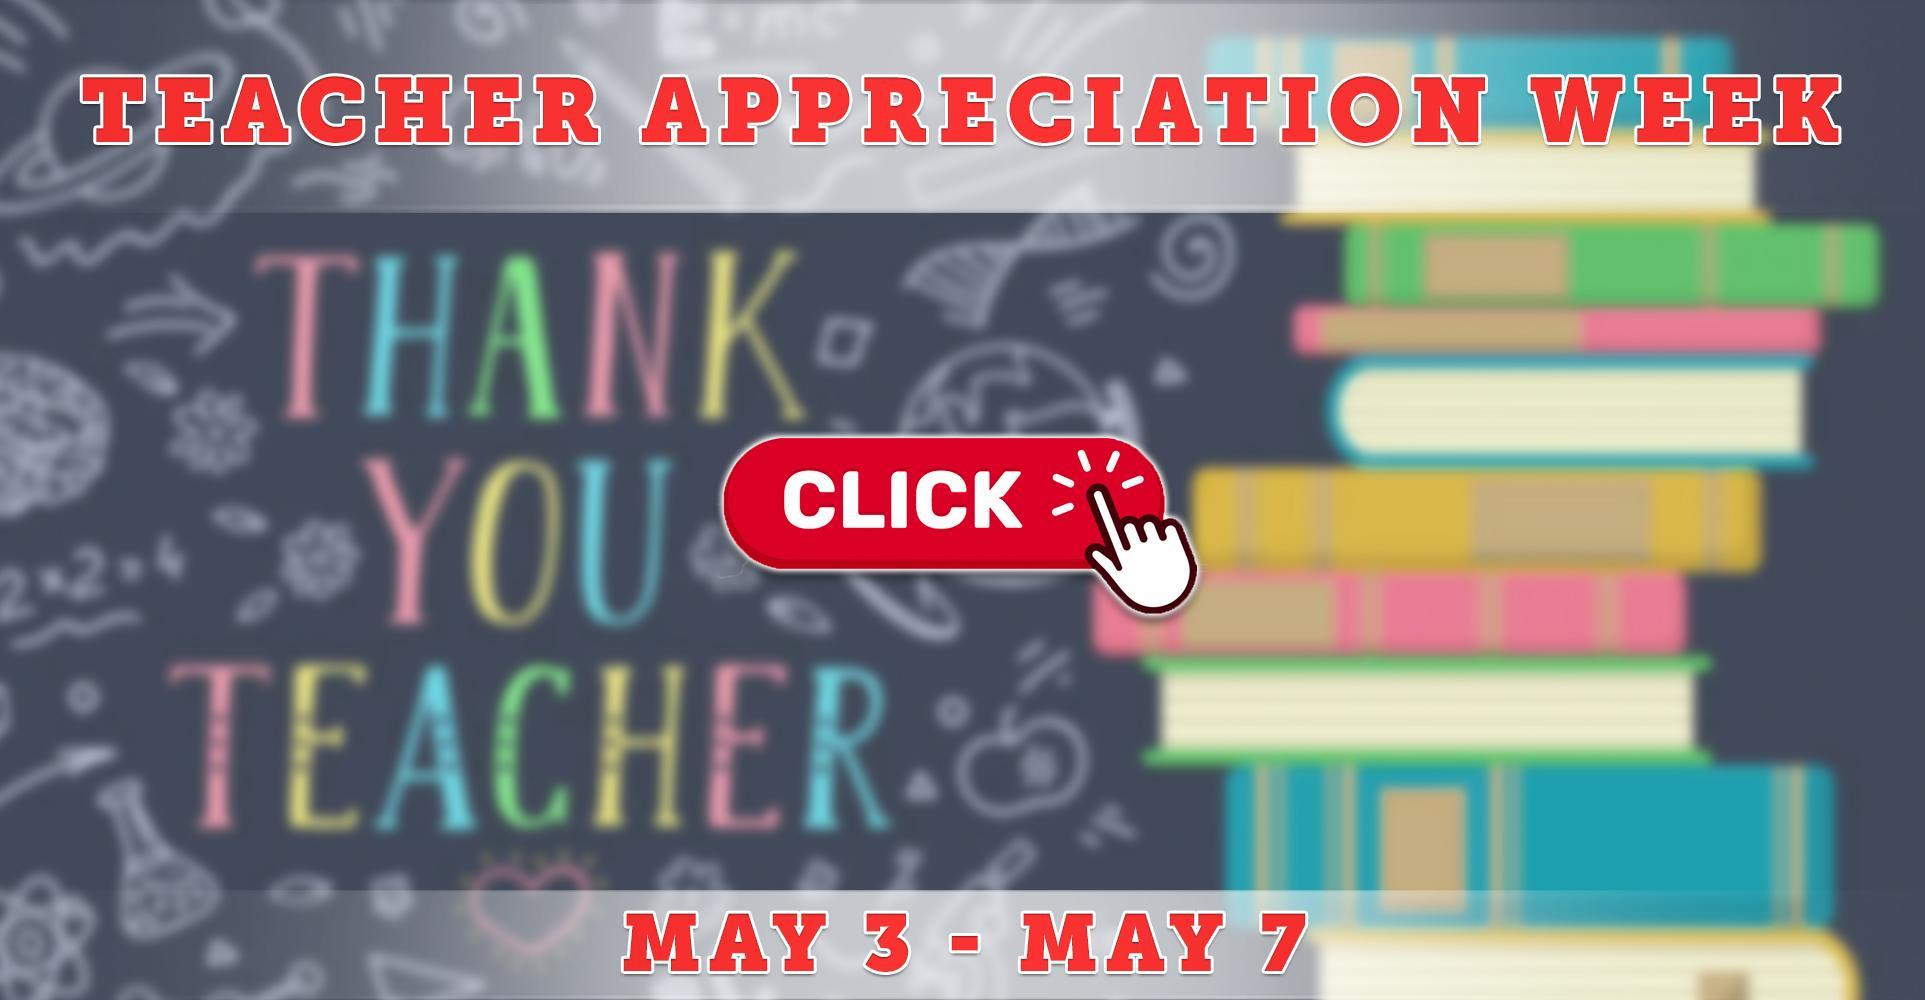 Teacher Appreciation Week Coming May 3-7, 2021